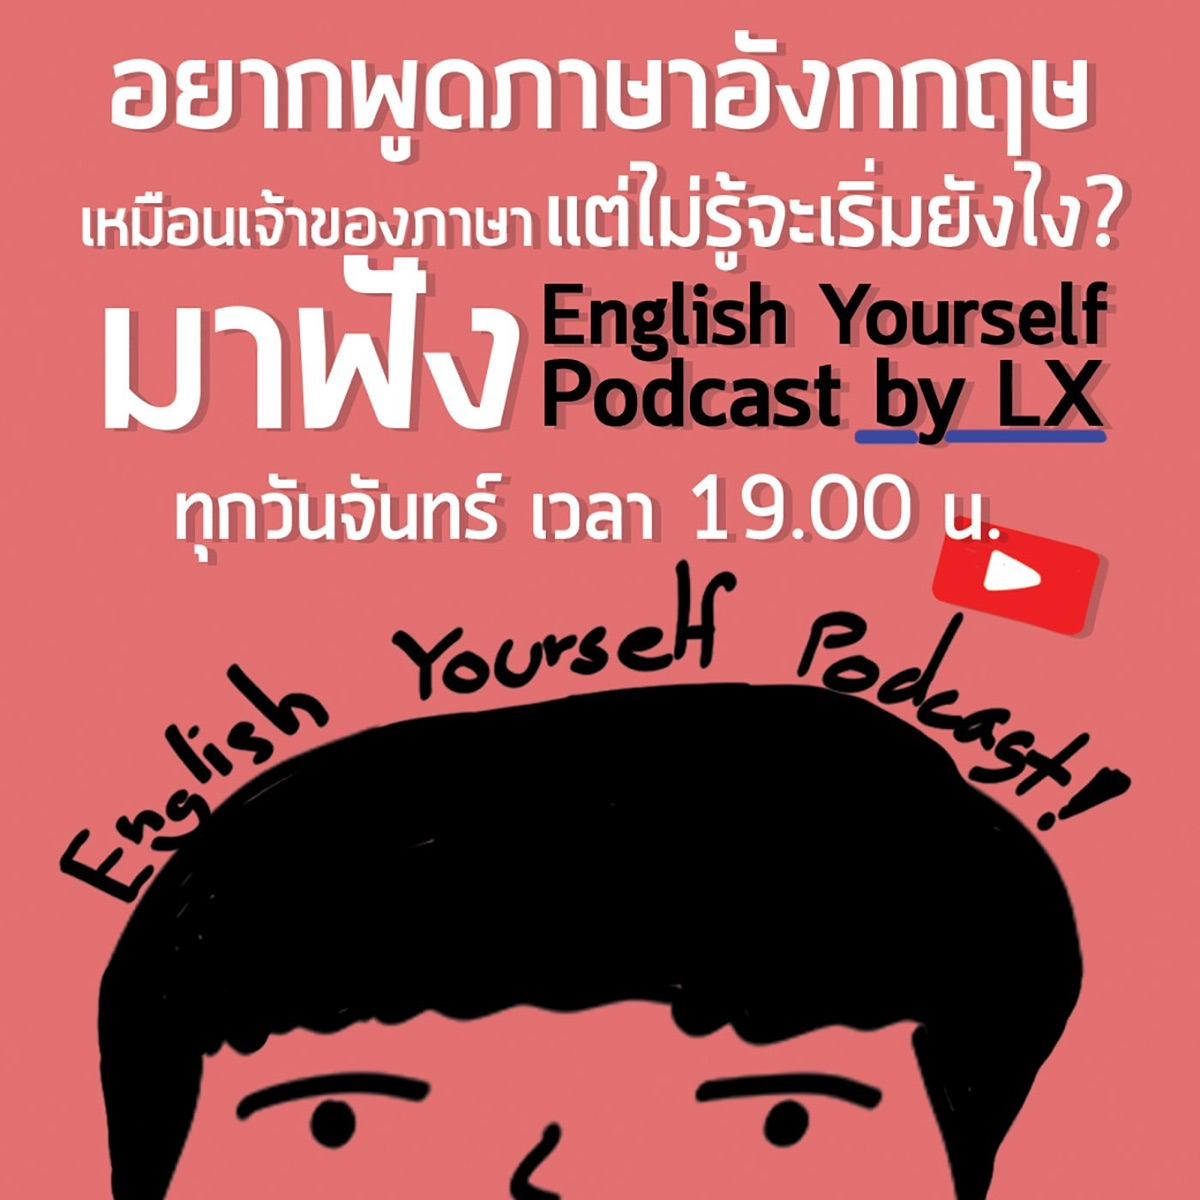 English Yourself Podcast